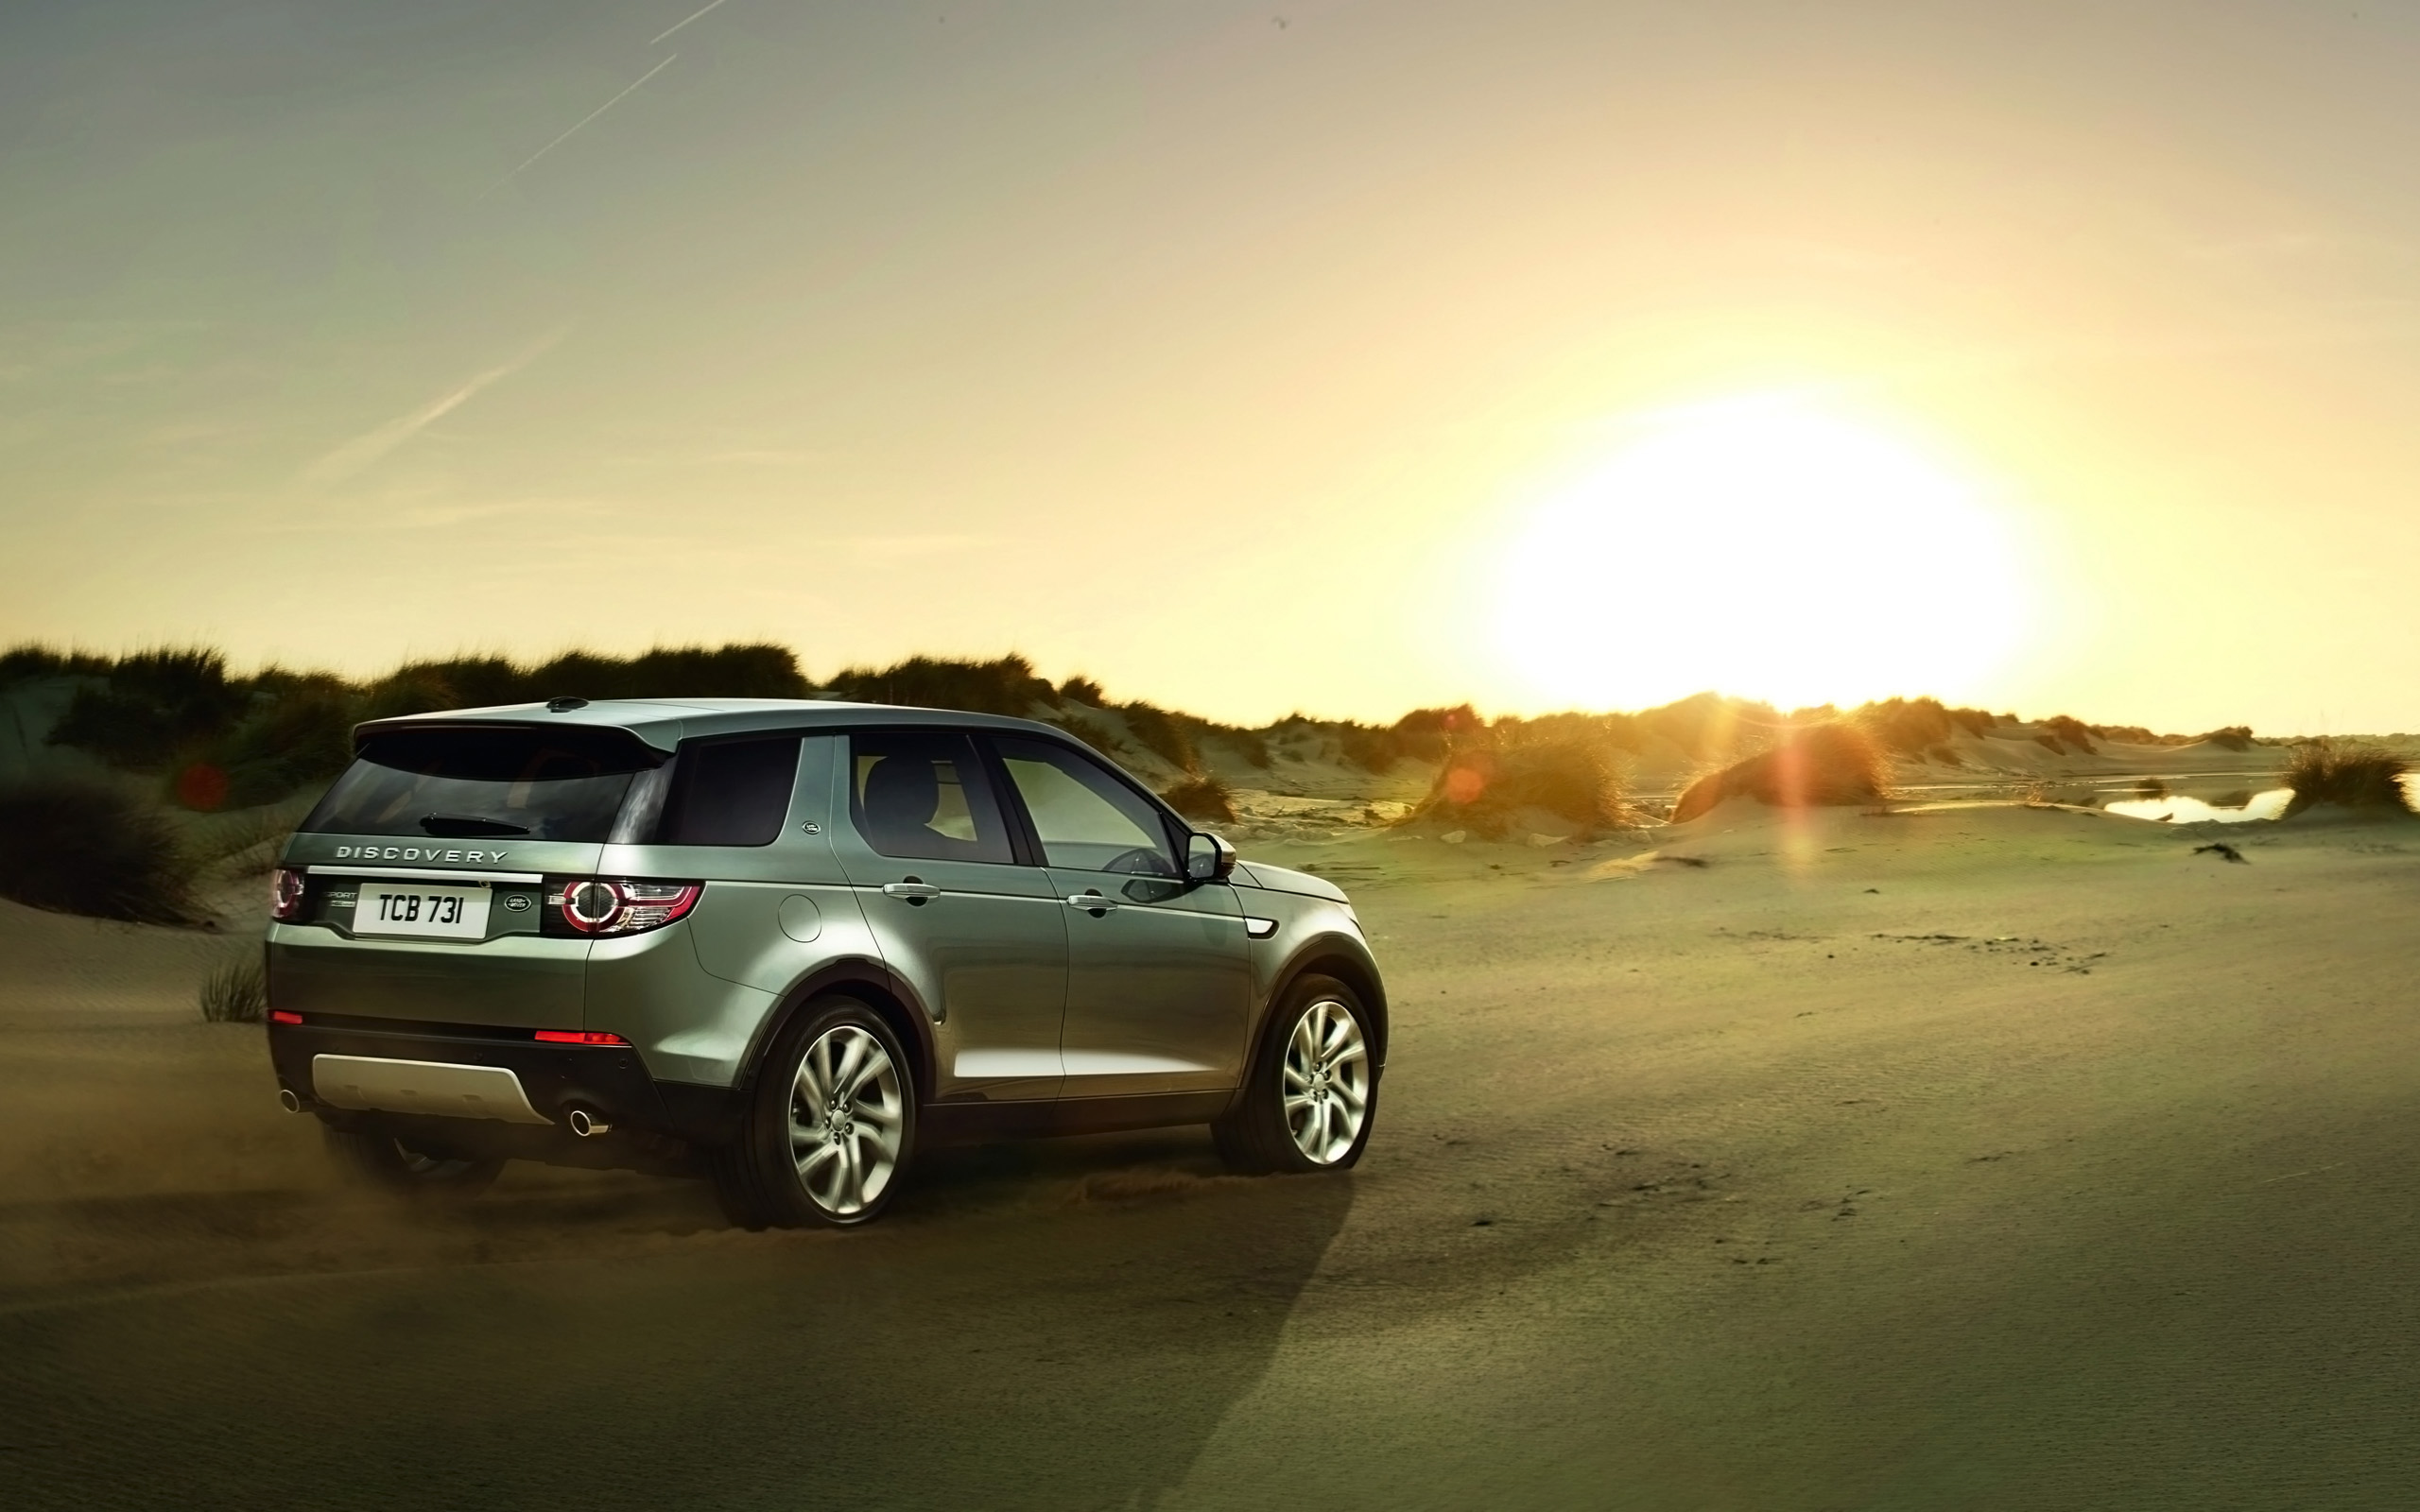 Sport Wallpaper Land Rovers: Land Rover Discovery Sport HD Wallpapers